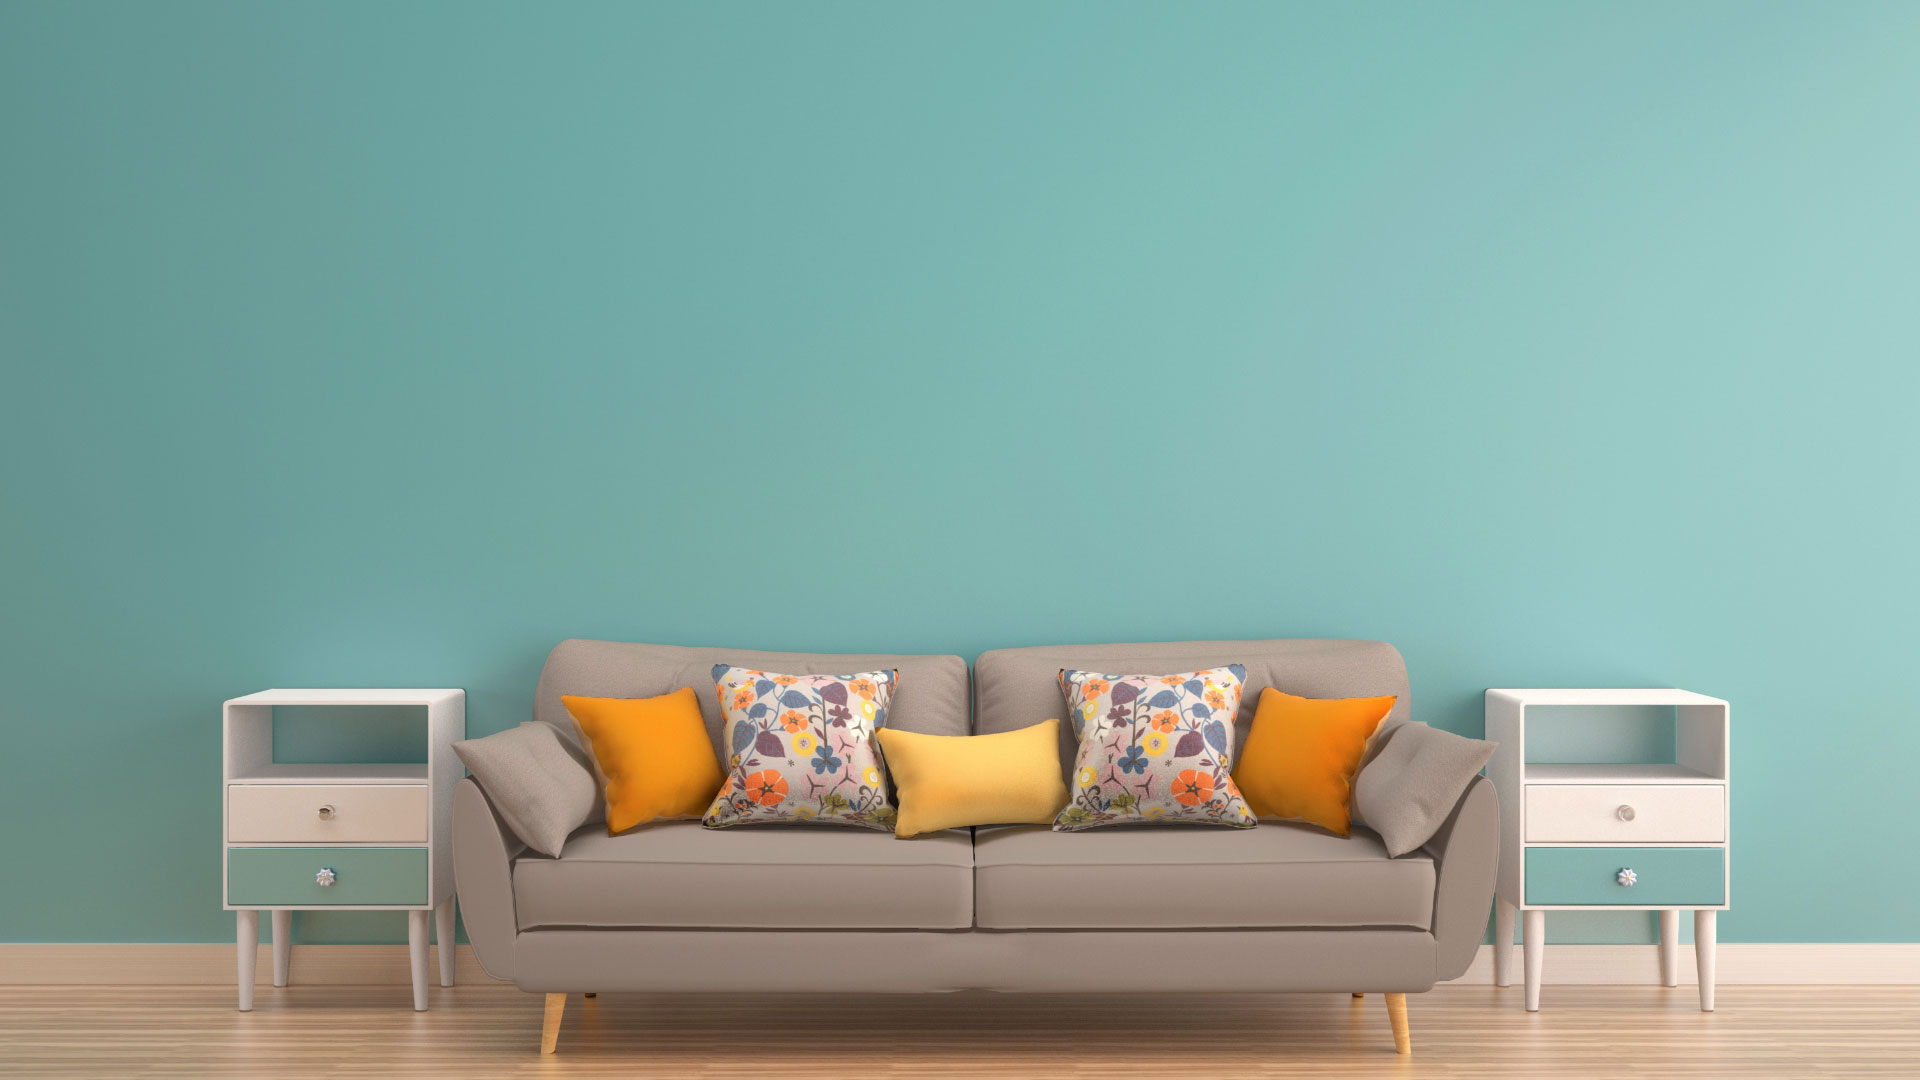 Slider FOTOCASA. Sofa with two jokers at the ends